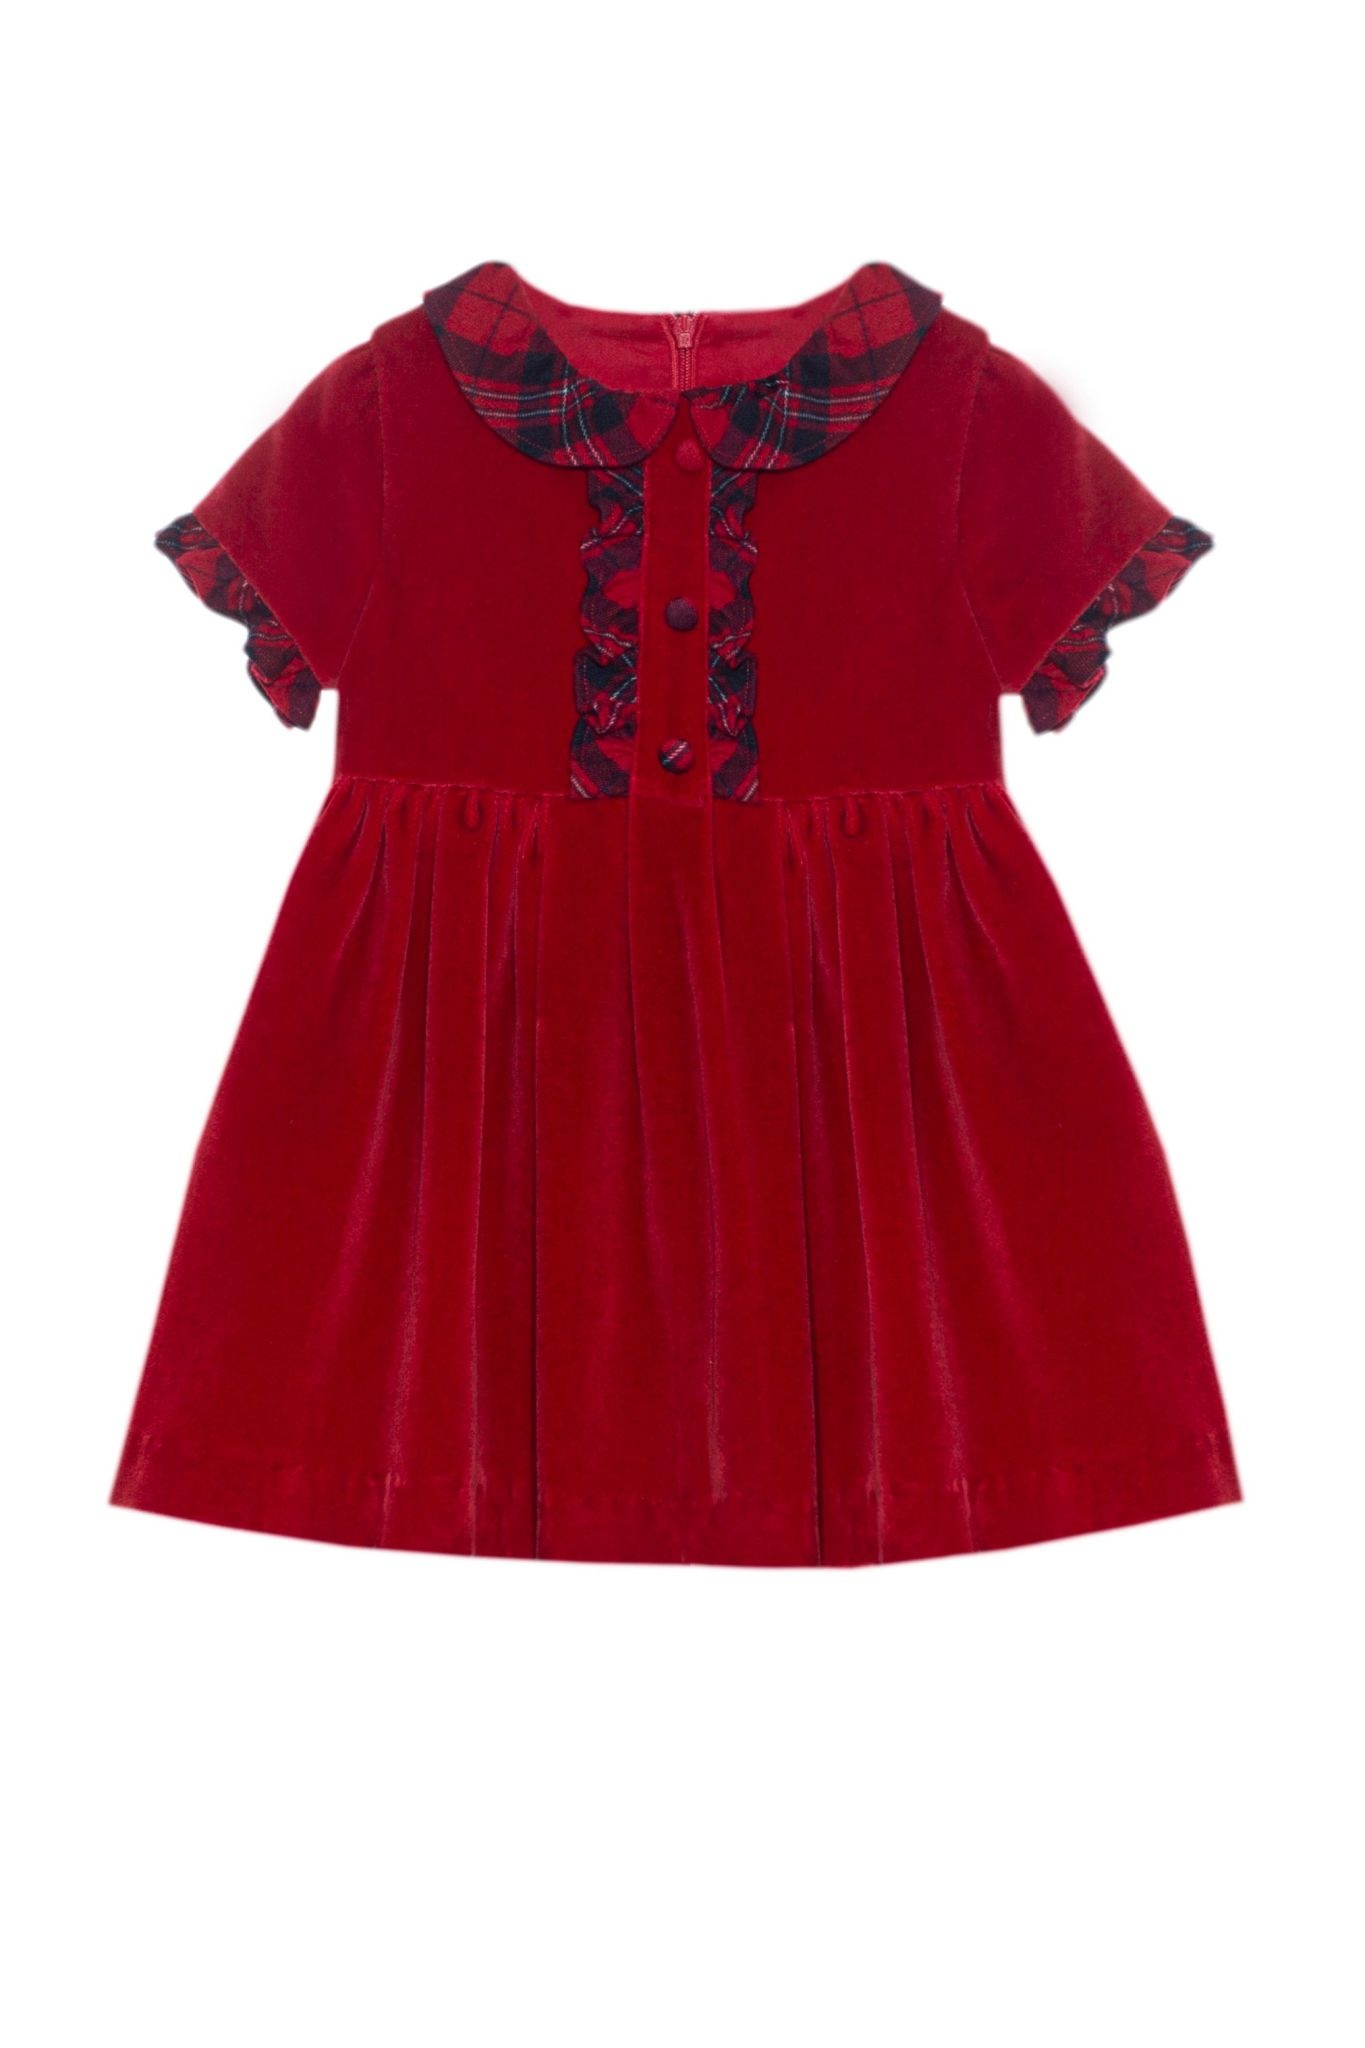 Patachou Patachou Red Tartan Dress